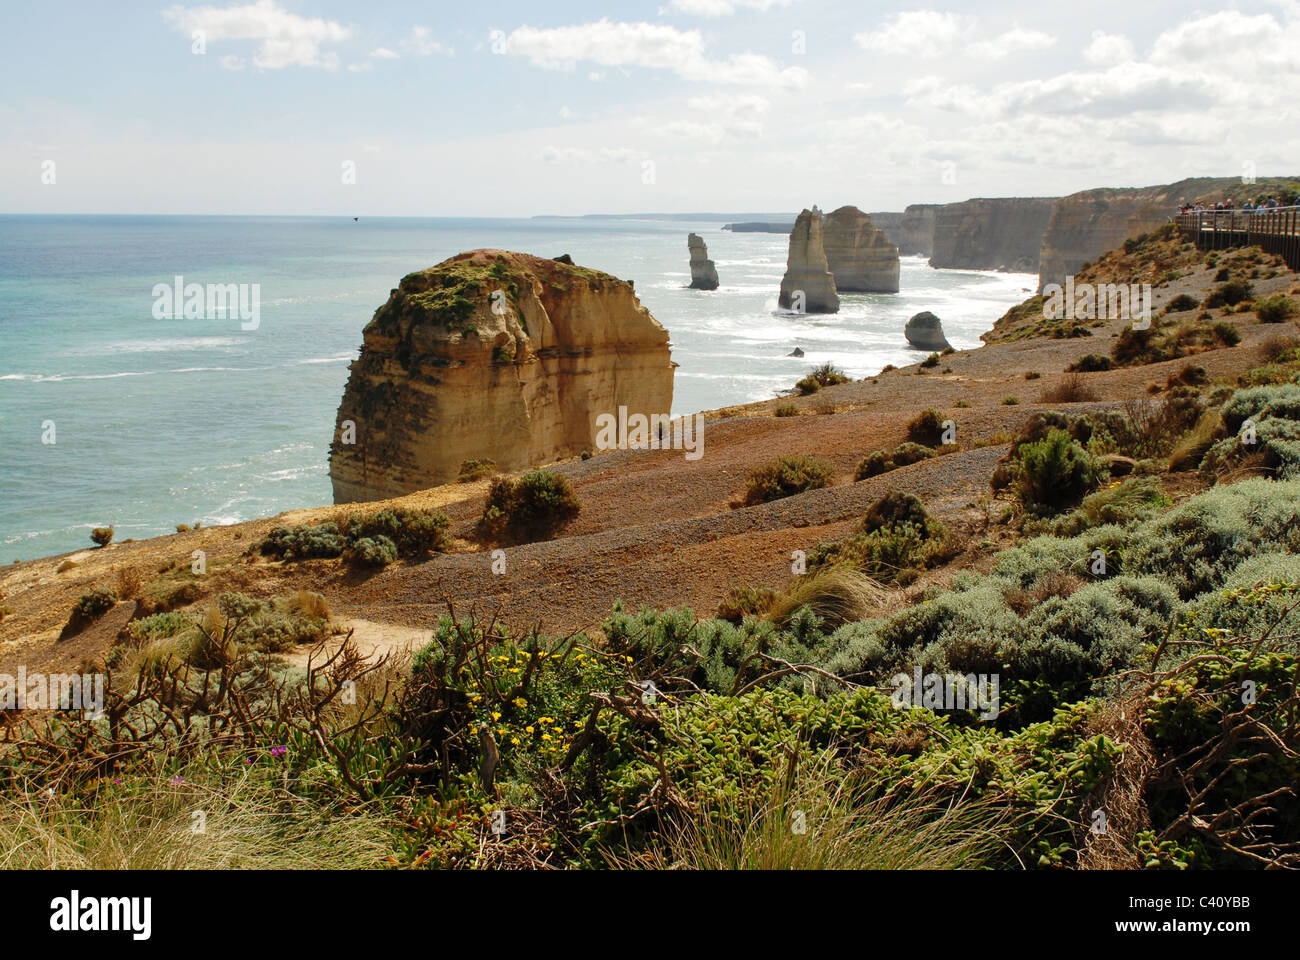 World-known Twelve Apostles in Port Campbell National Park's Shipwreck Coast on the Great Ocean Rock in Victoria - Stock Image